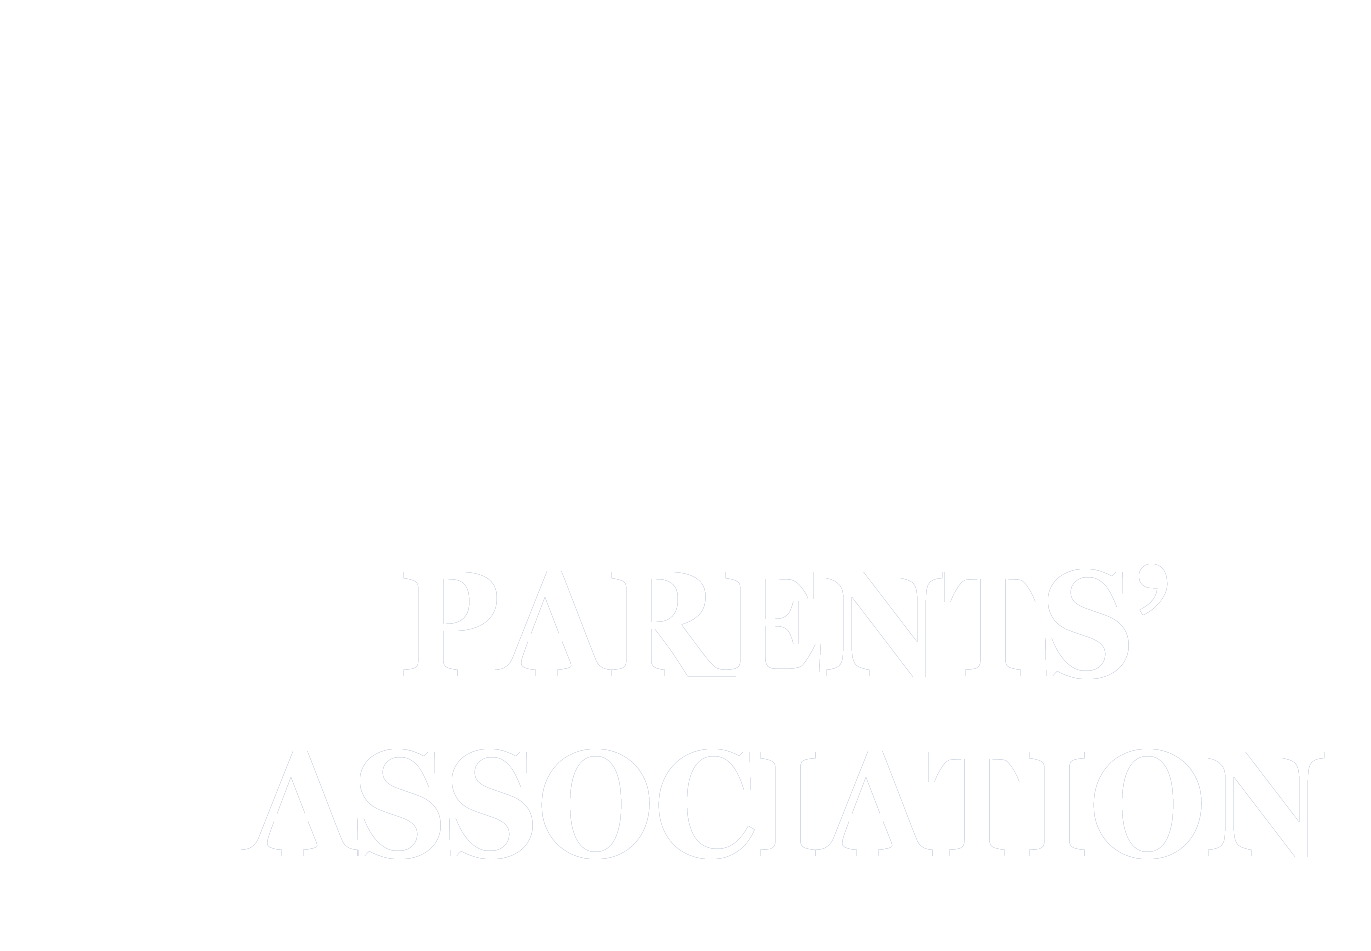 TFS Parents' Association